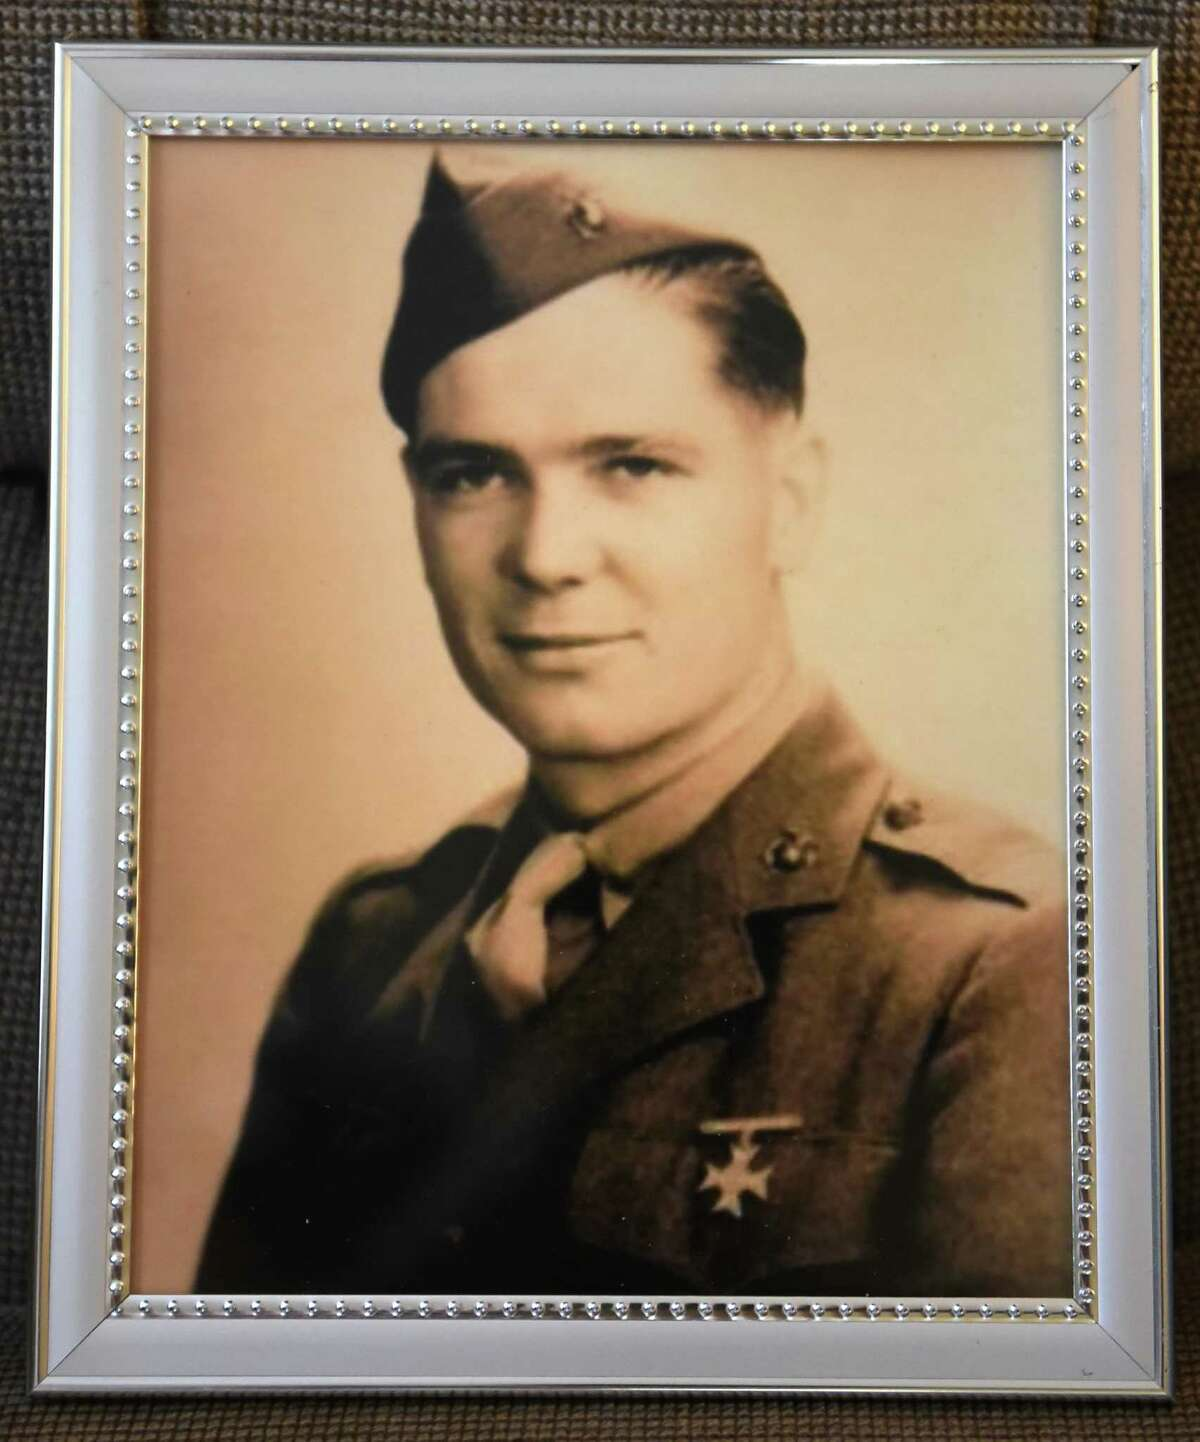 Photo of George Traver, a World War II Marine who was killed in combat against the Japanese on Nov. 20, 1943 at the Battle of Tarawa Wednesday, Aug. 10, 2016 in Chatham, N.Y. His remains were found in May, identified by the pocketknife his parents had given to him. His remains will arrive at Albany International Airport on Aug. 26 and will be taken by motorcade to his hometown of Chatham, where there will be a service and interment over the weekend. (Lori Van Buren / Times Union)